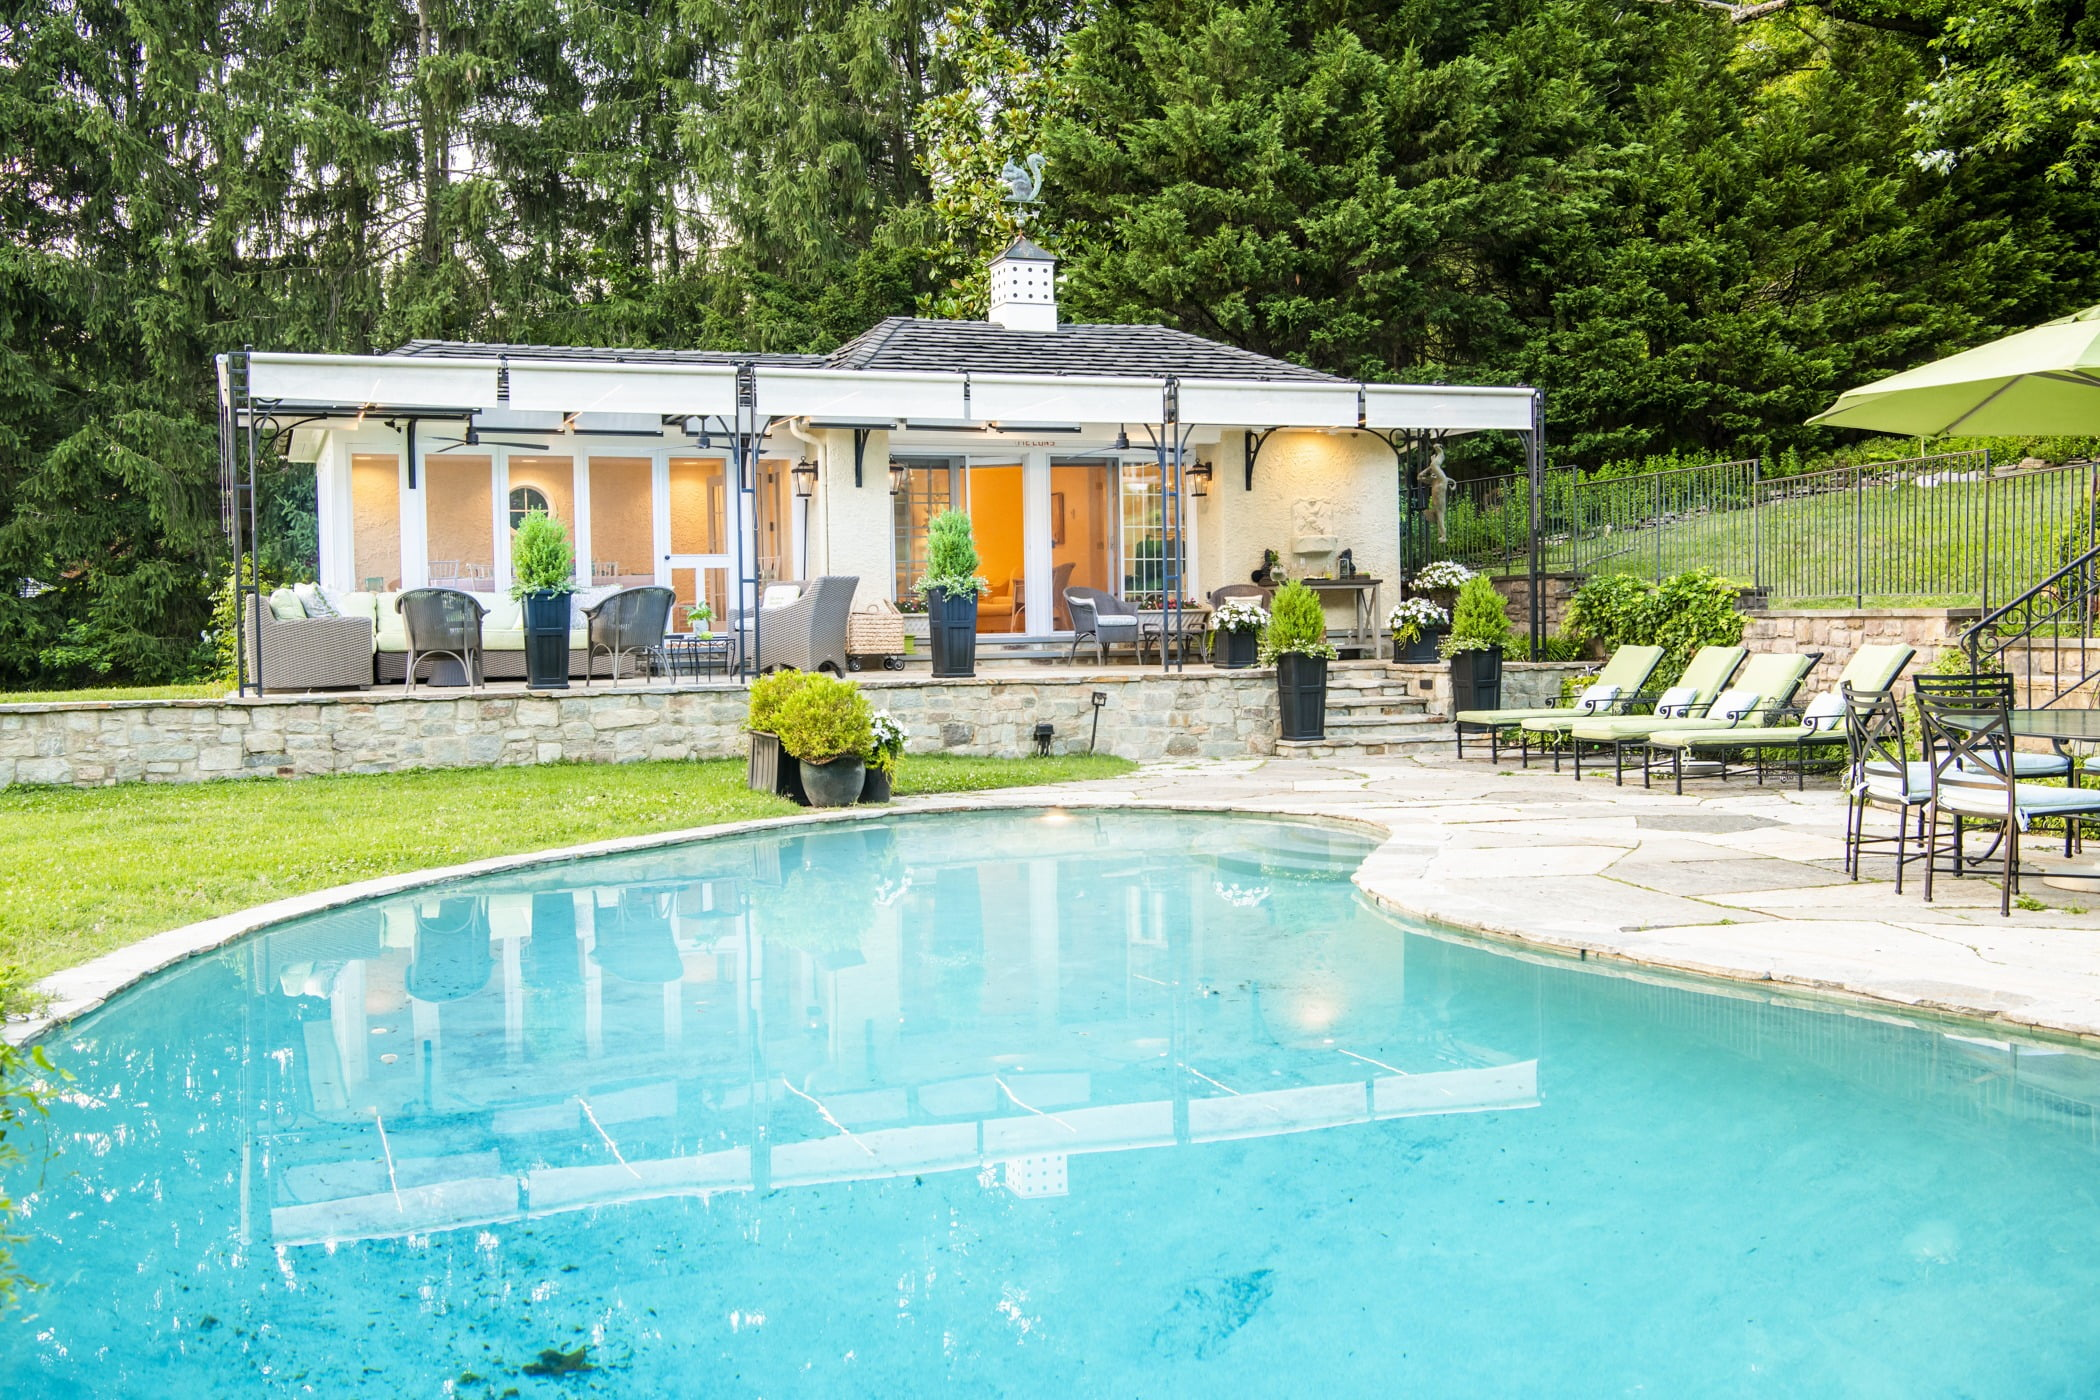 Luxury pool house custom designed for a home remodel with a large seating space and large metal pergola (Pool view) (2)